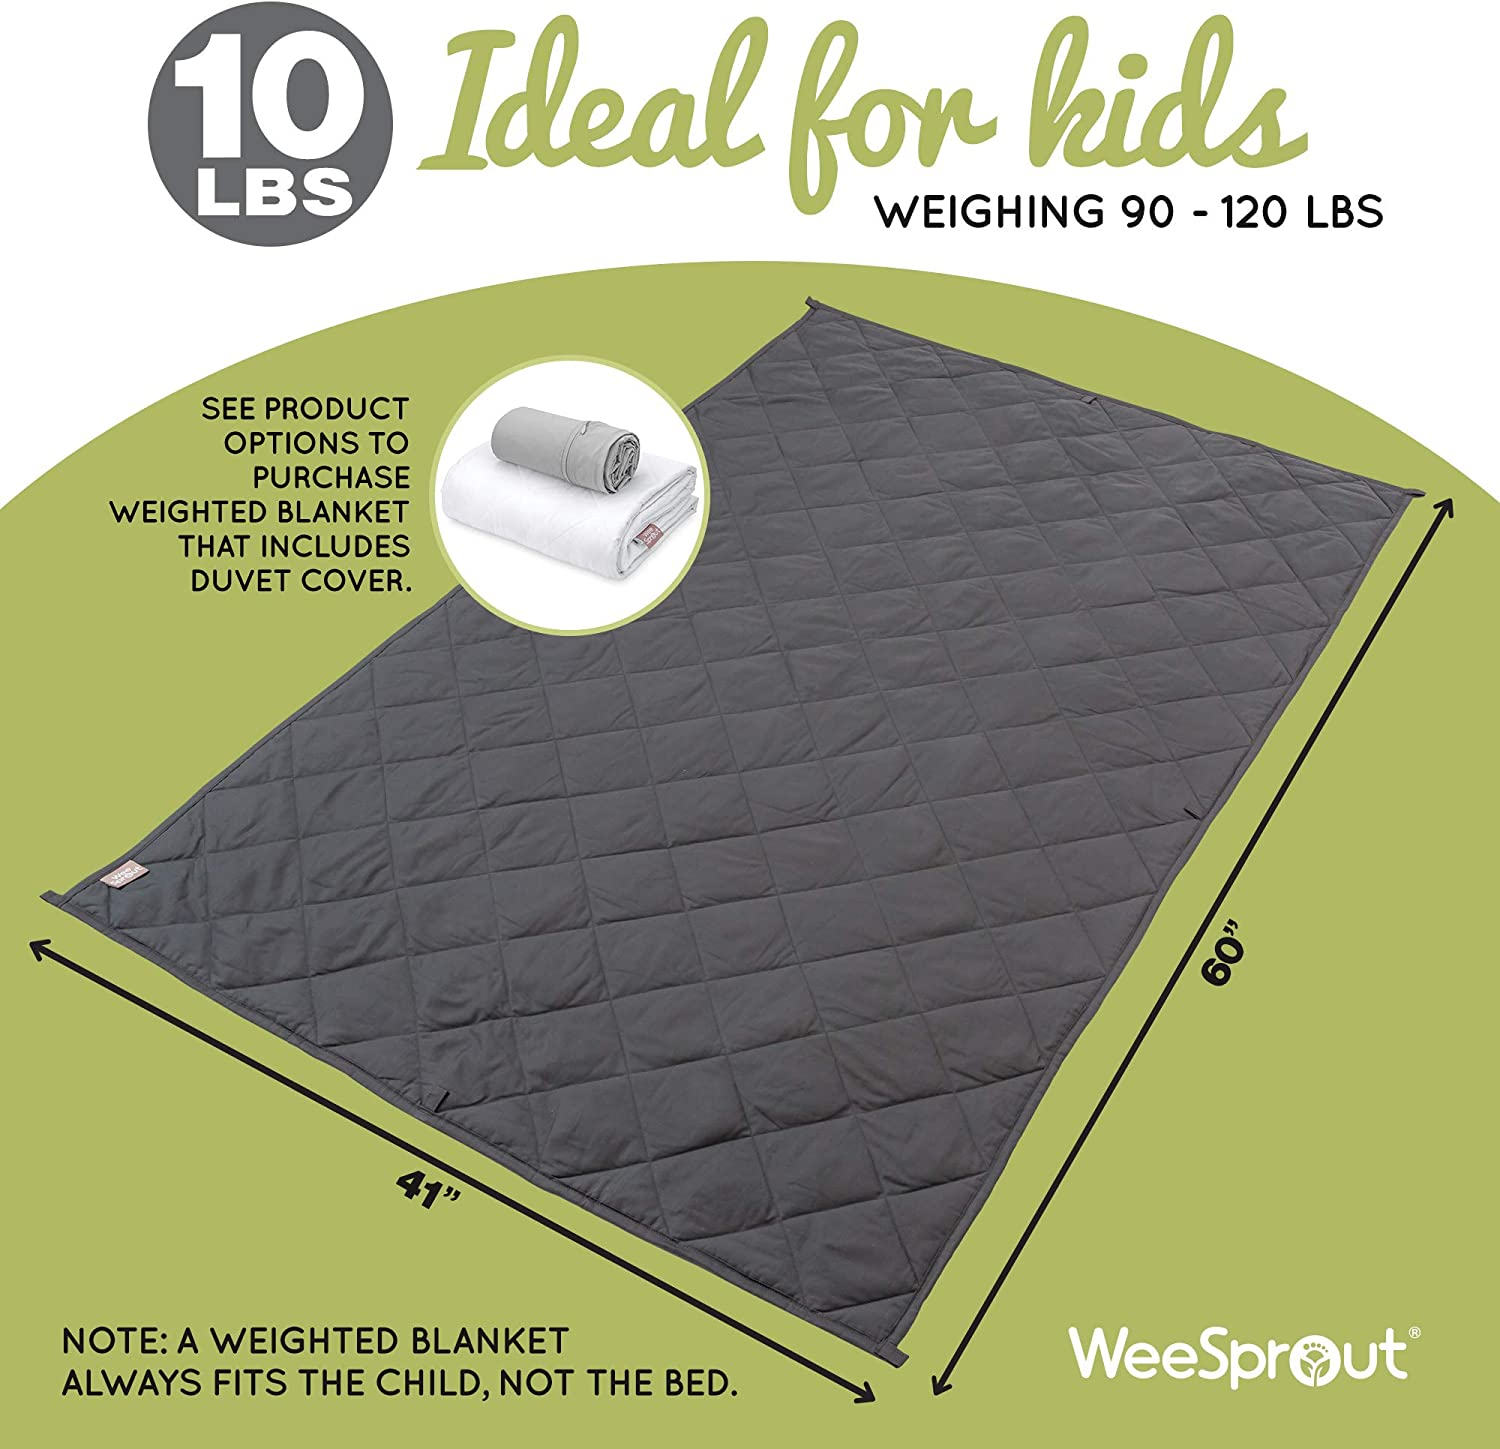 """5 lbs   100/% Organic Cotton Dark Gray Blanket 36/"""" x 48/"""" Small Size Glass Beads Breathable Quilted Pockets Stays Cool WeeSprout Weighted Blanket for Kids for Kids Weighing 40-70 lbs"""